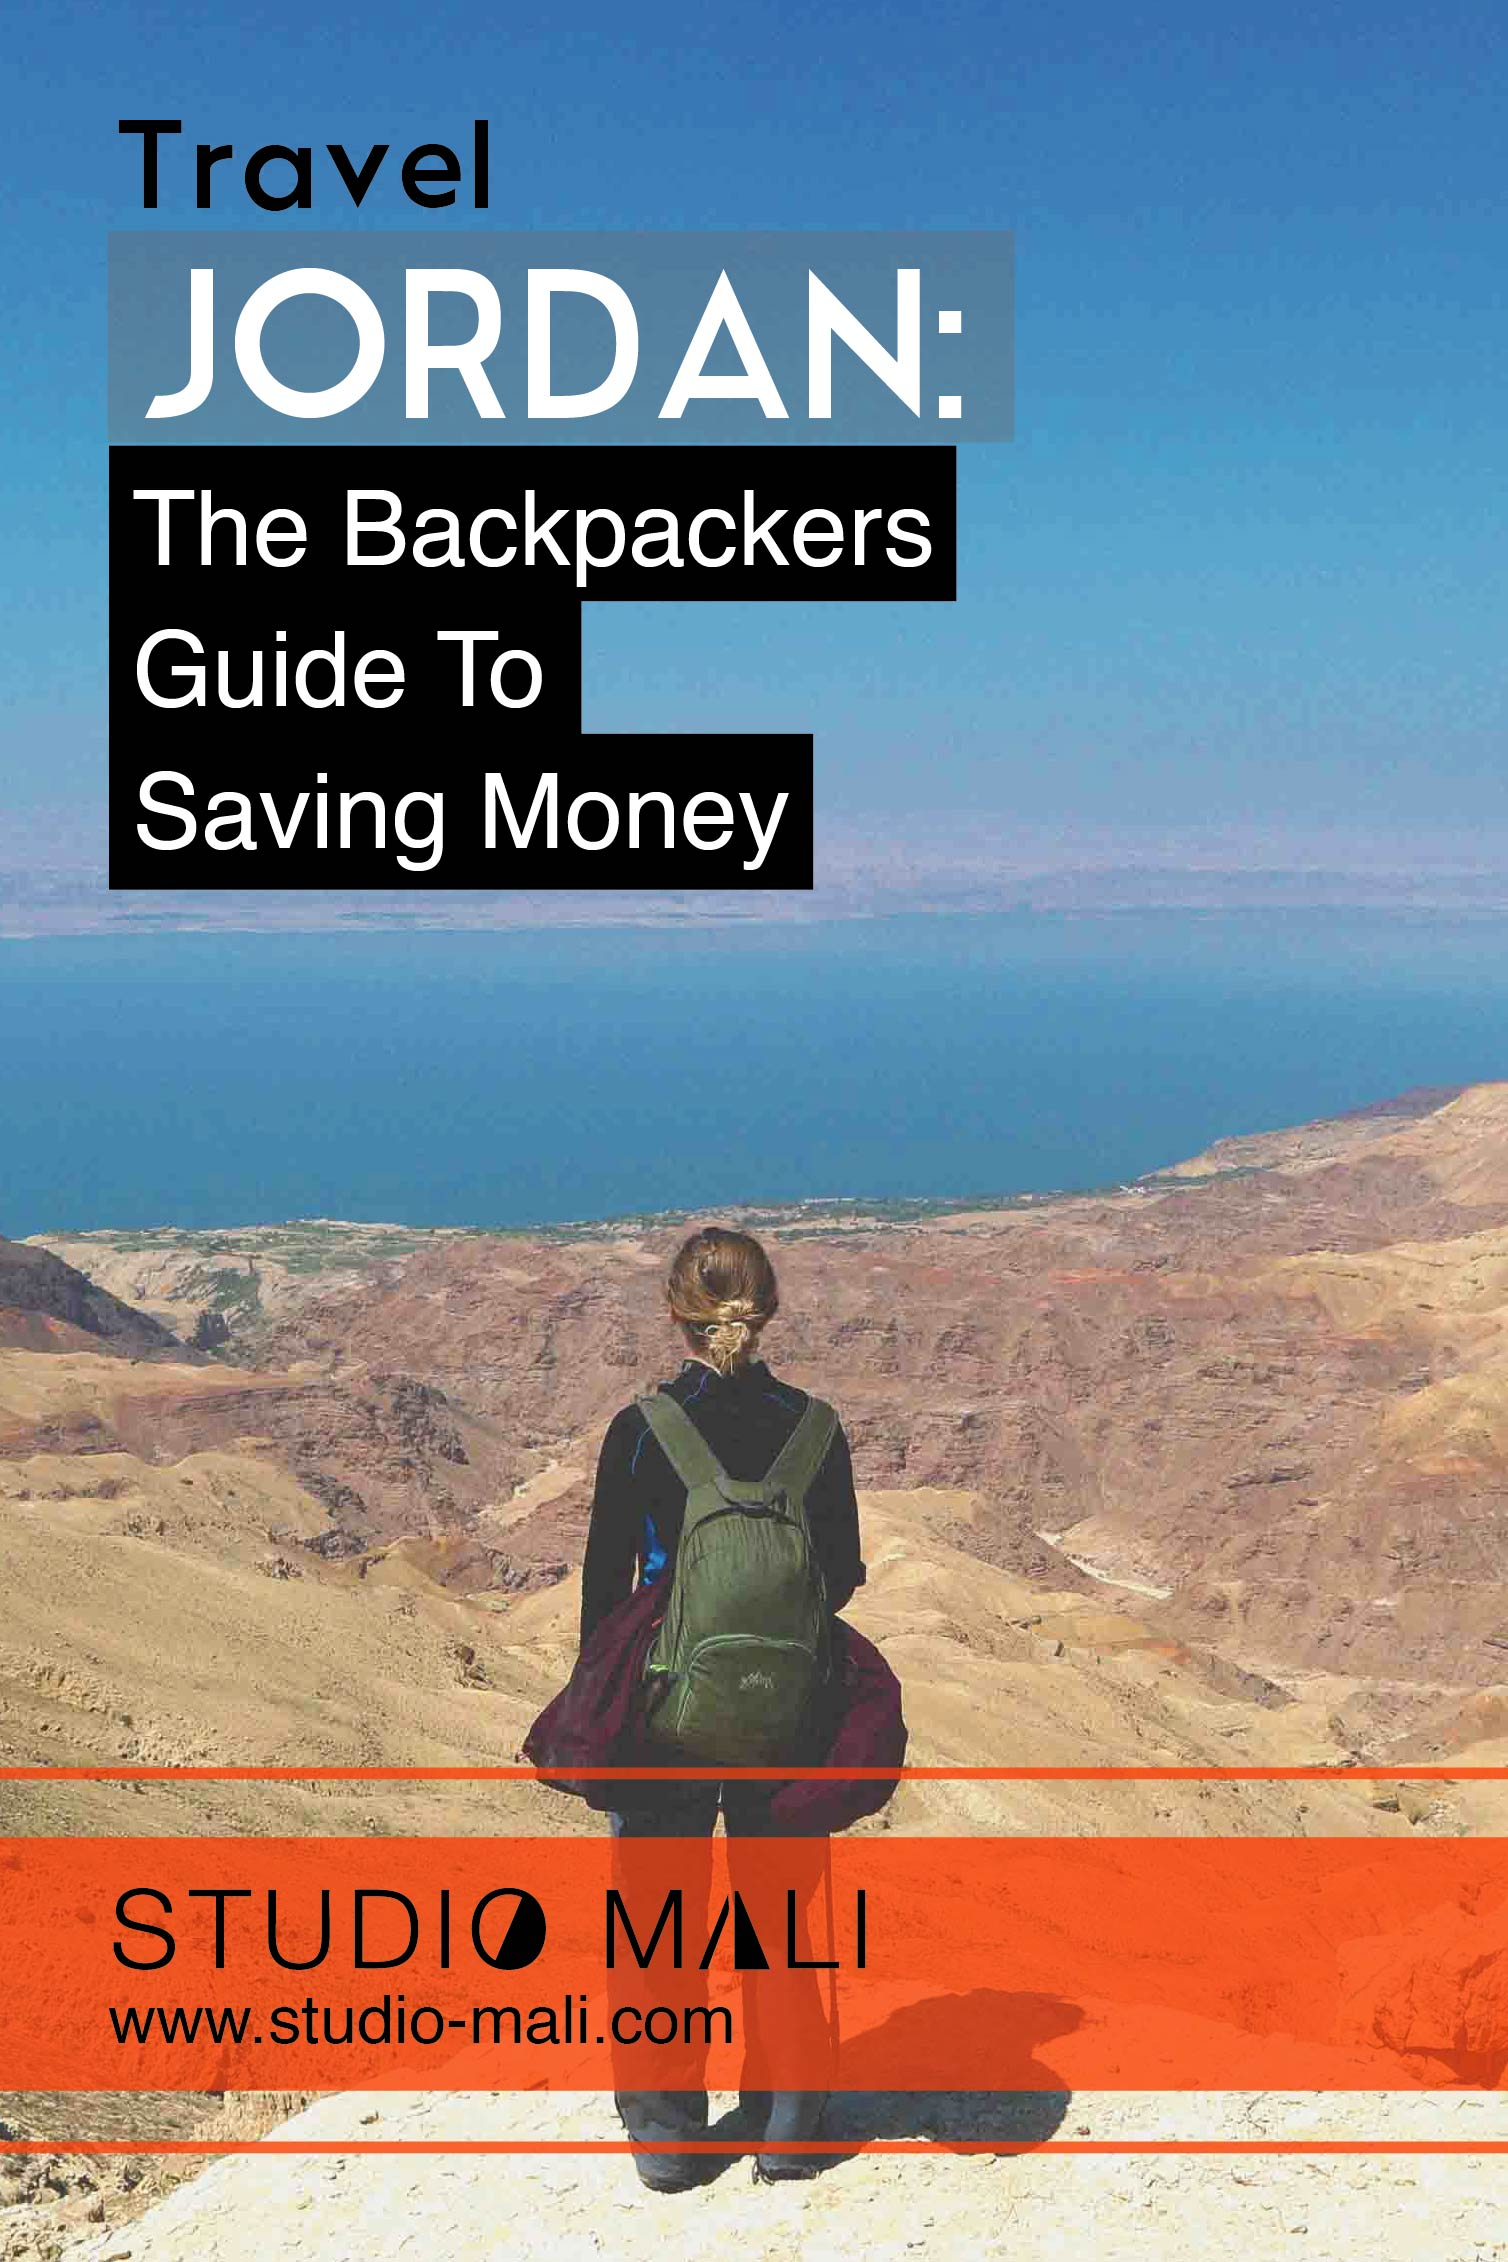 Jordan - The Backpackers Guide To Saving Money, by Studio Mali.jpg